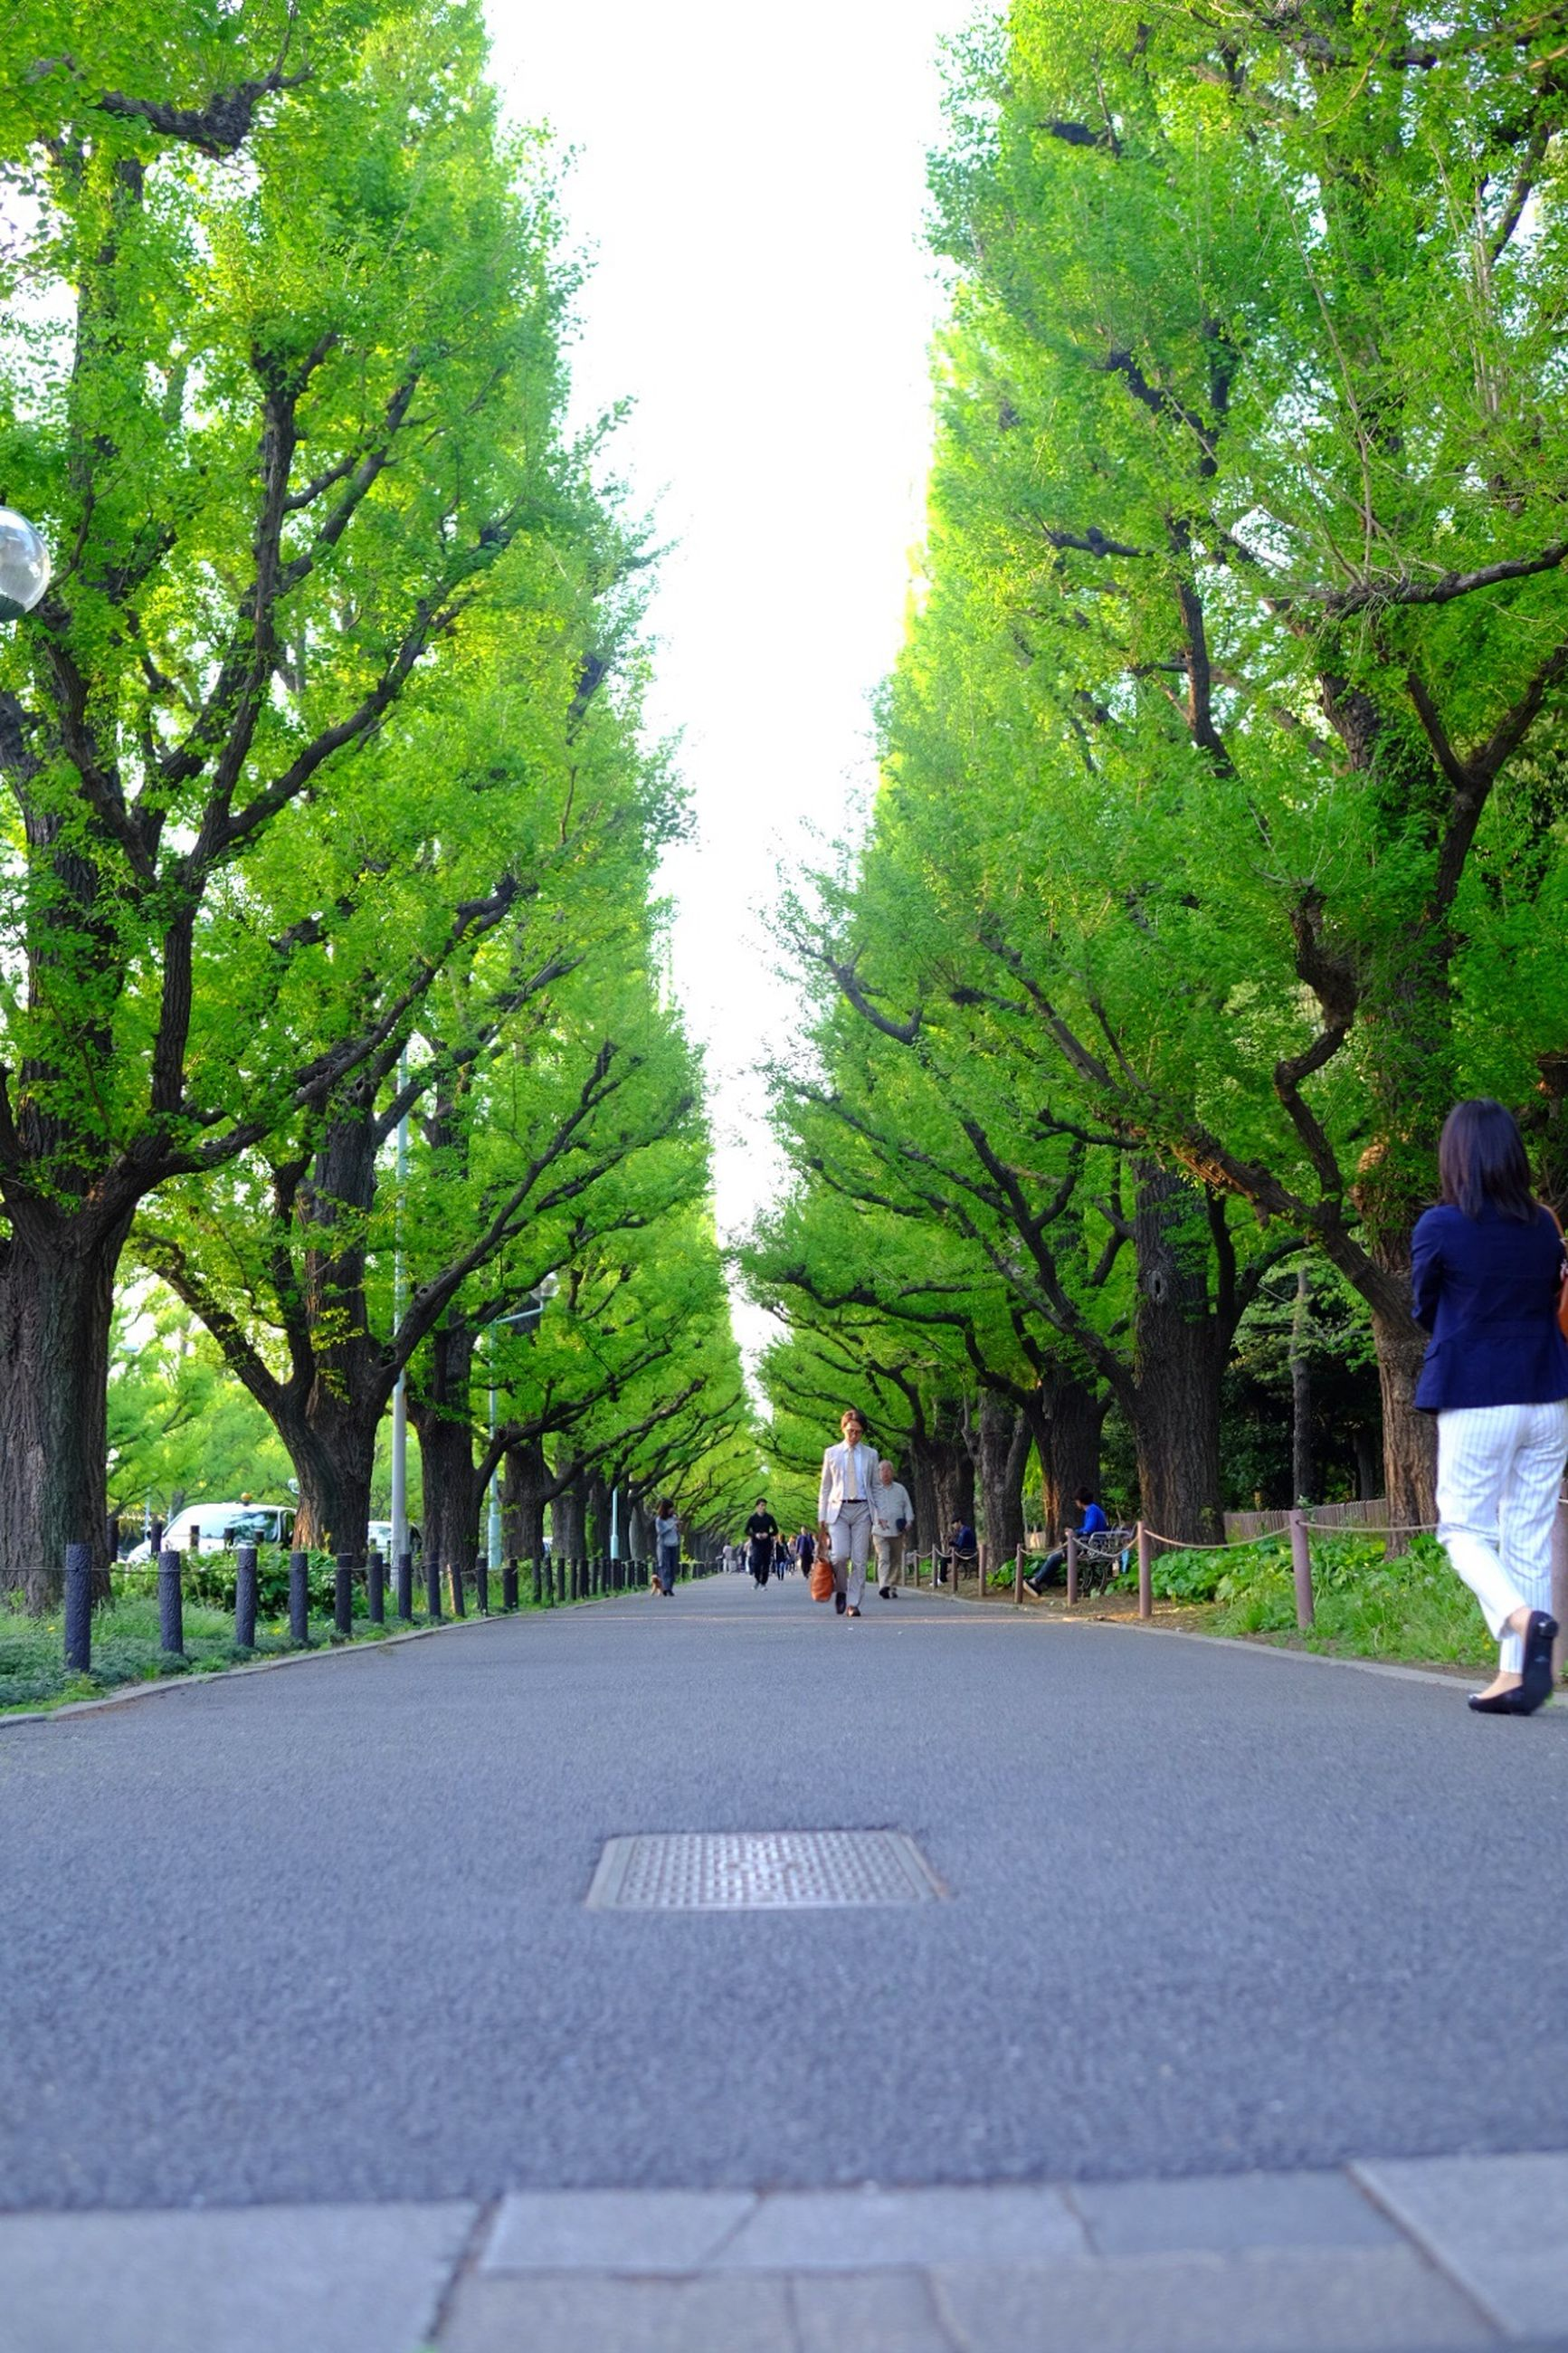 tree, men, person, lifestyles, leisure activity, walking, large group of people, the way forward, growth, park - man made space, clear sky, green color, rear view, group of people, footpath, medium group of people, treelined, day, park